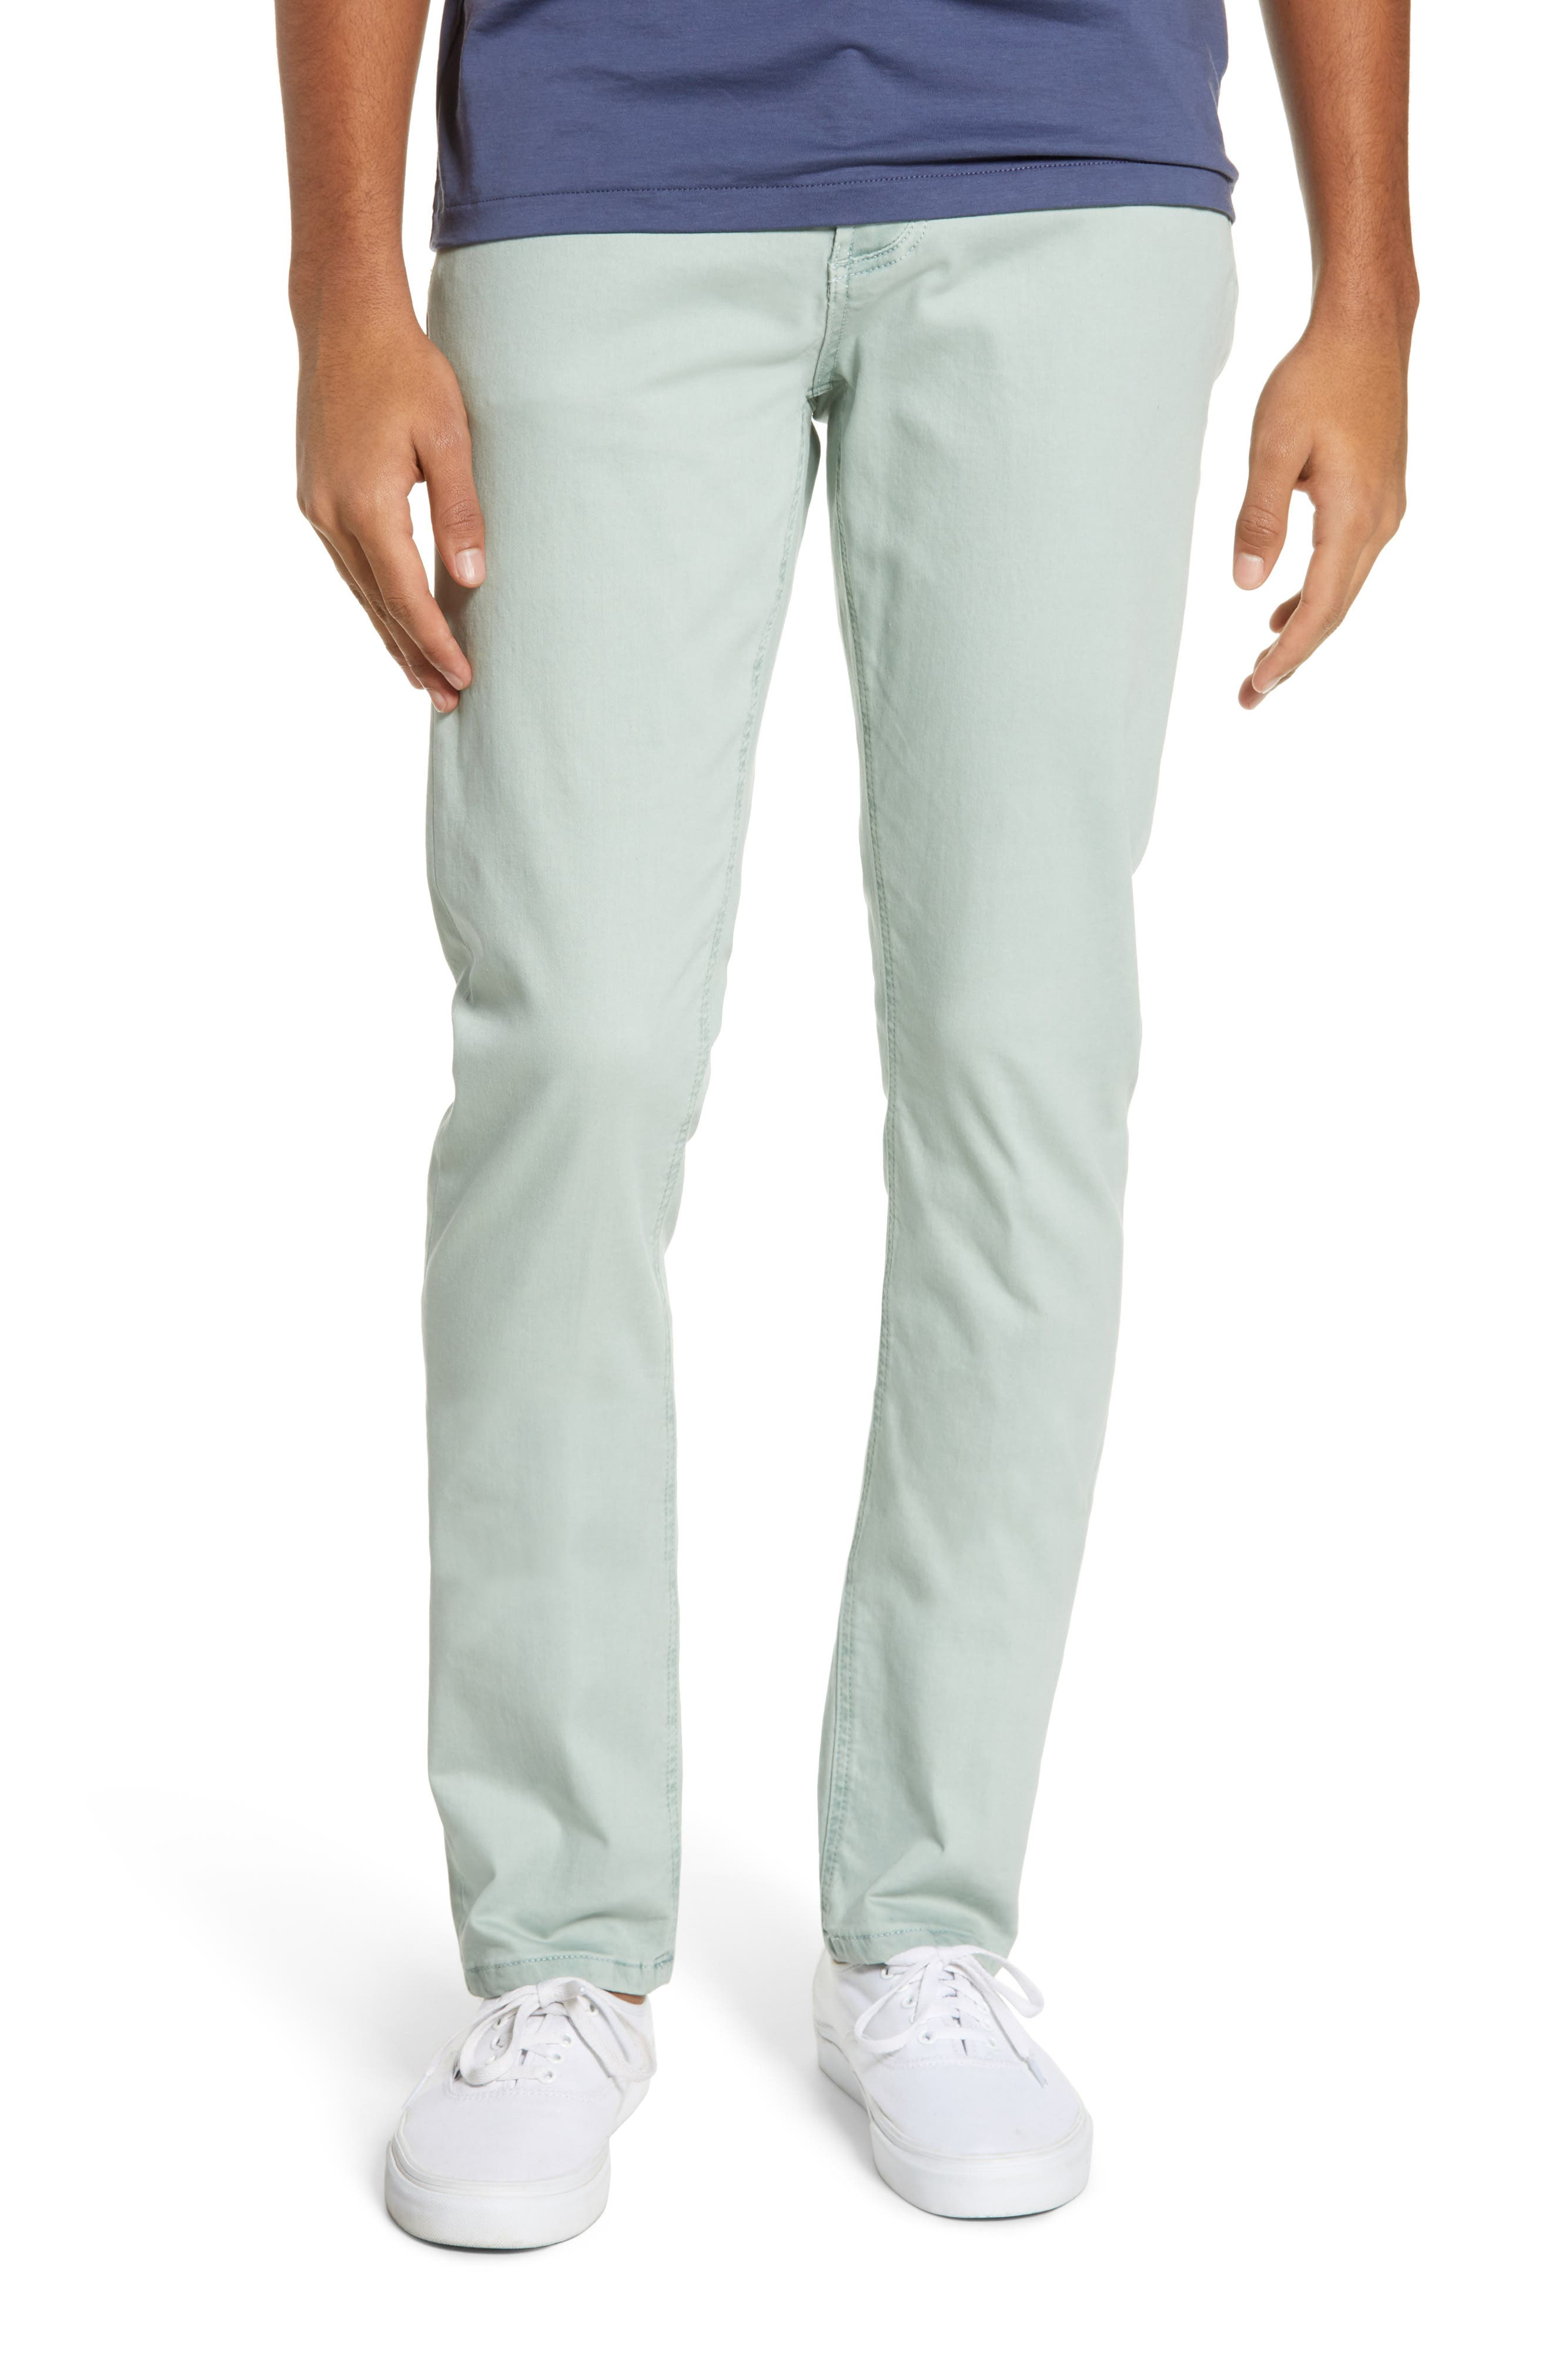 BLANKNYC Wooster Slim Fit Jeans, Main, color, PURE DEVOTION